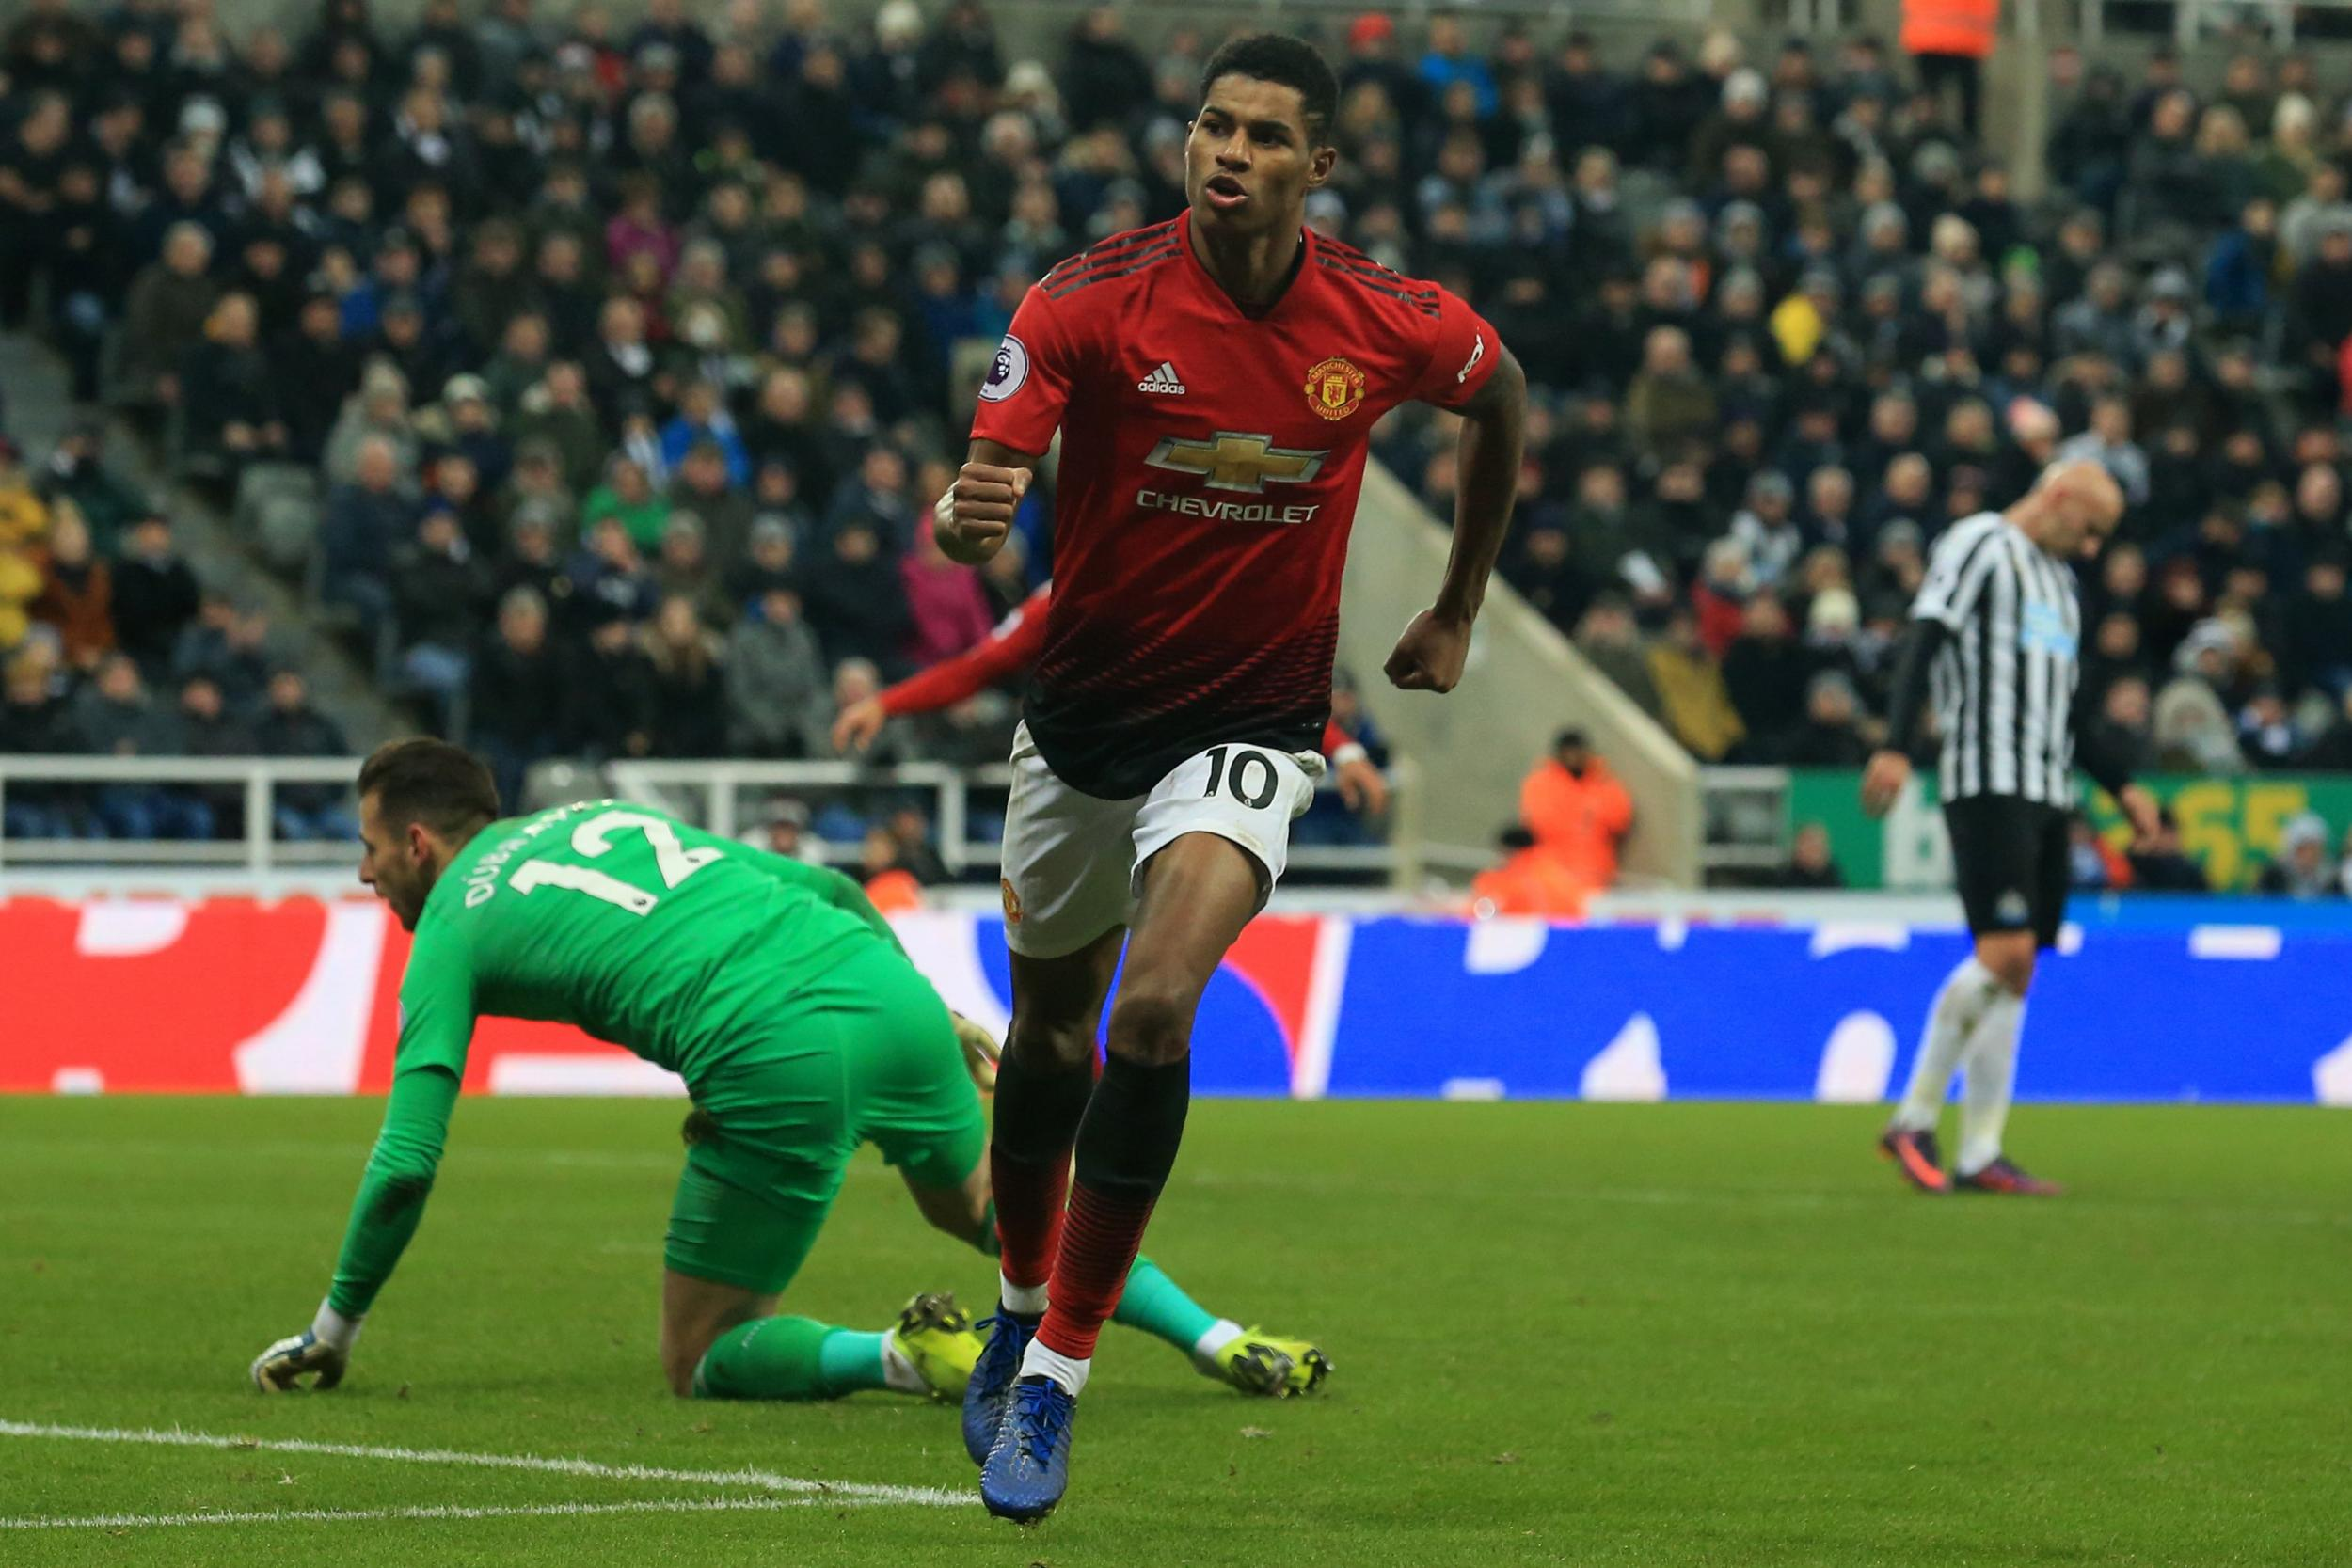 soi-keo-newcastle-vs-manchester-united-luc-2h-ngay-18-10-2020-2